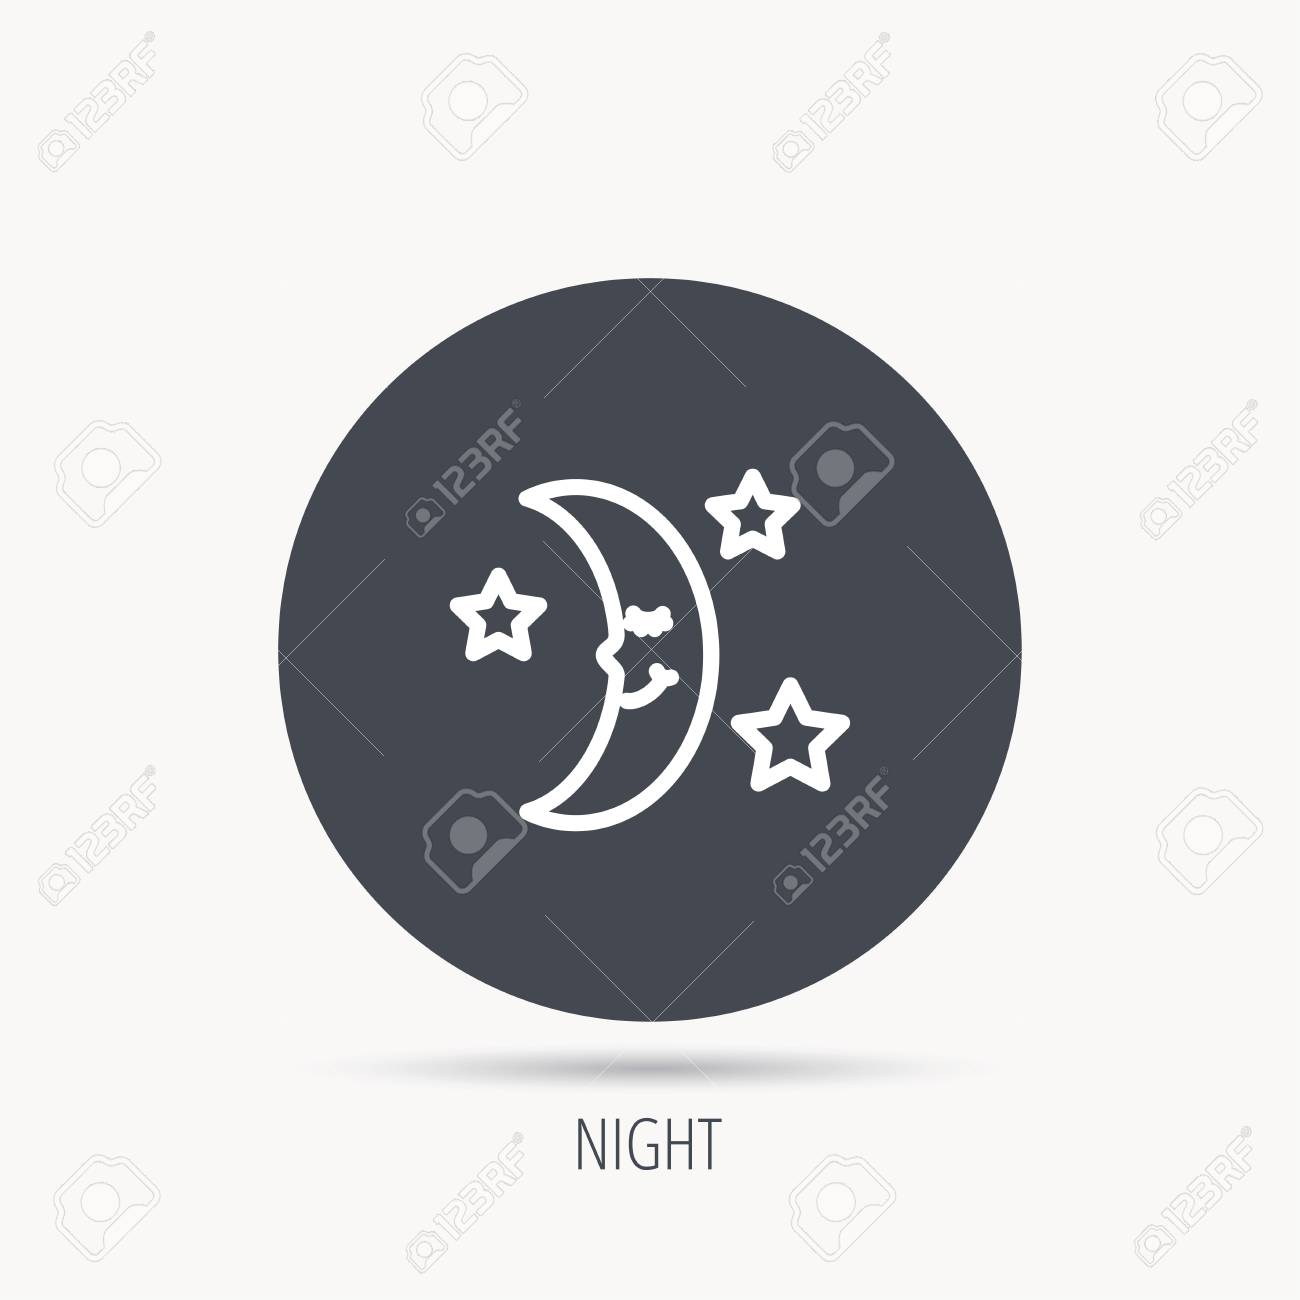 Night Or Sleep Icon Moon And Stars Sign Crescent Astronomy